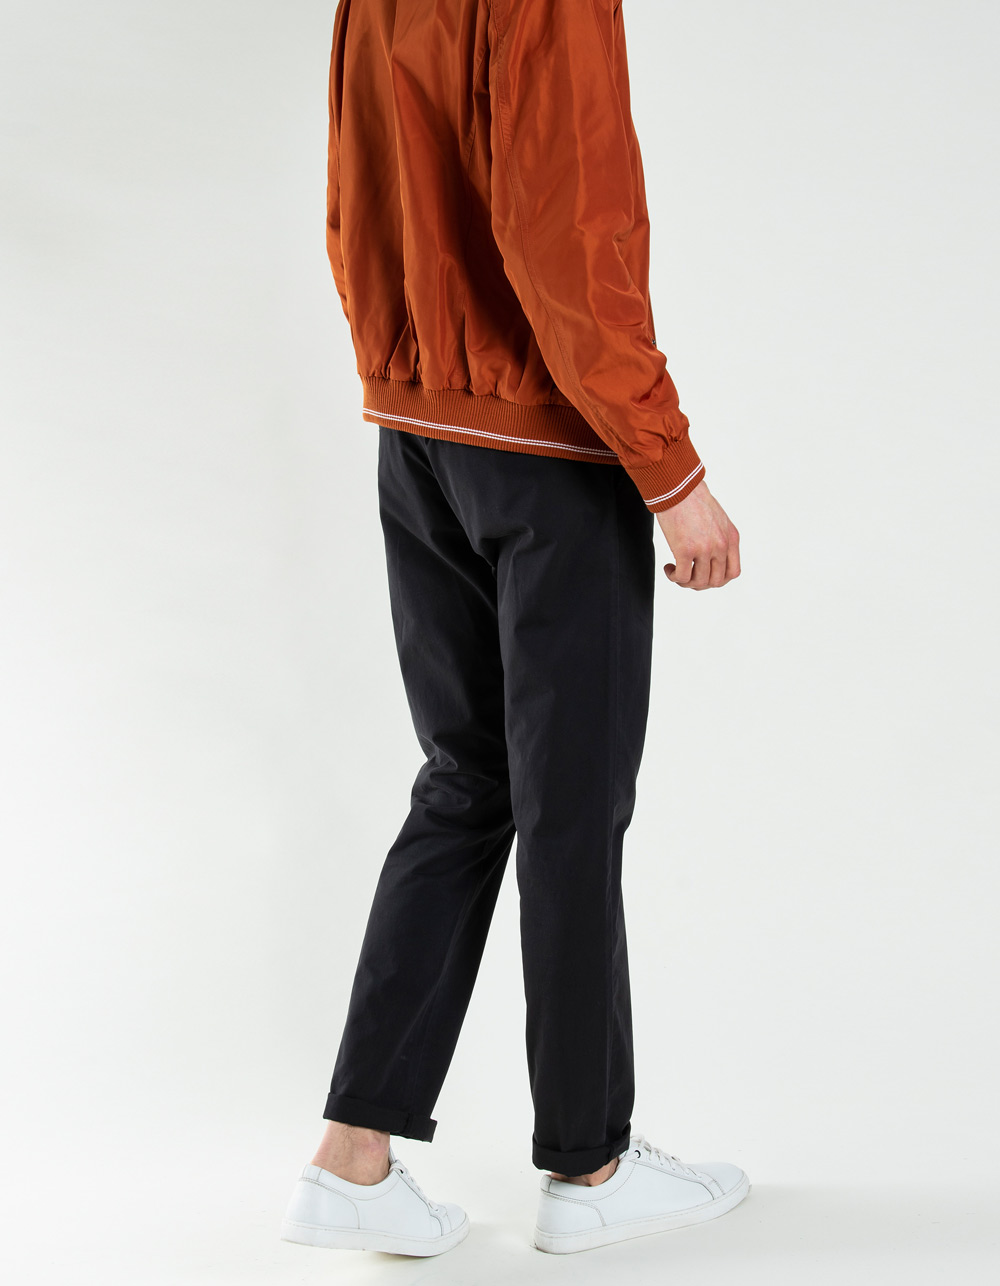 Black chino trousers - Backside